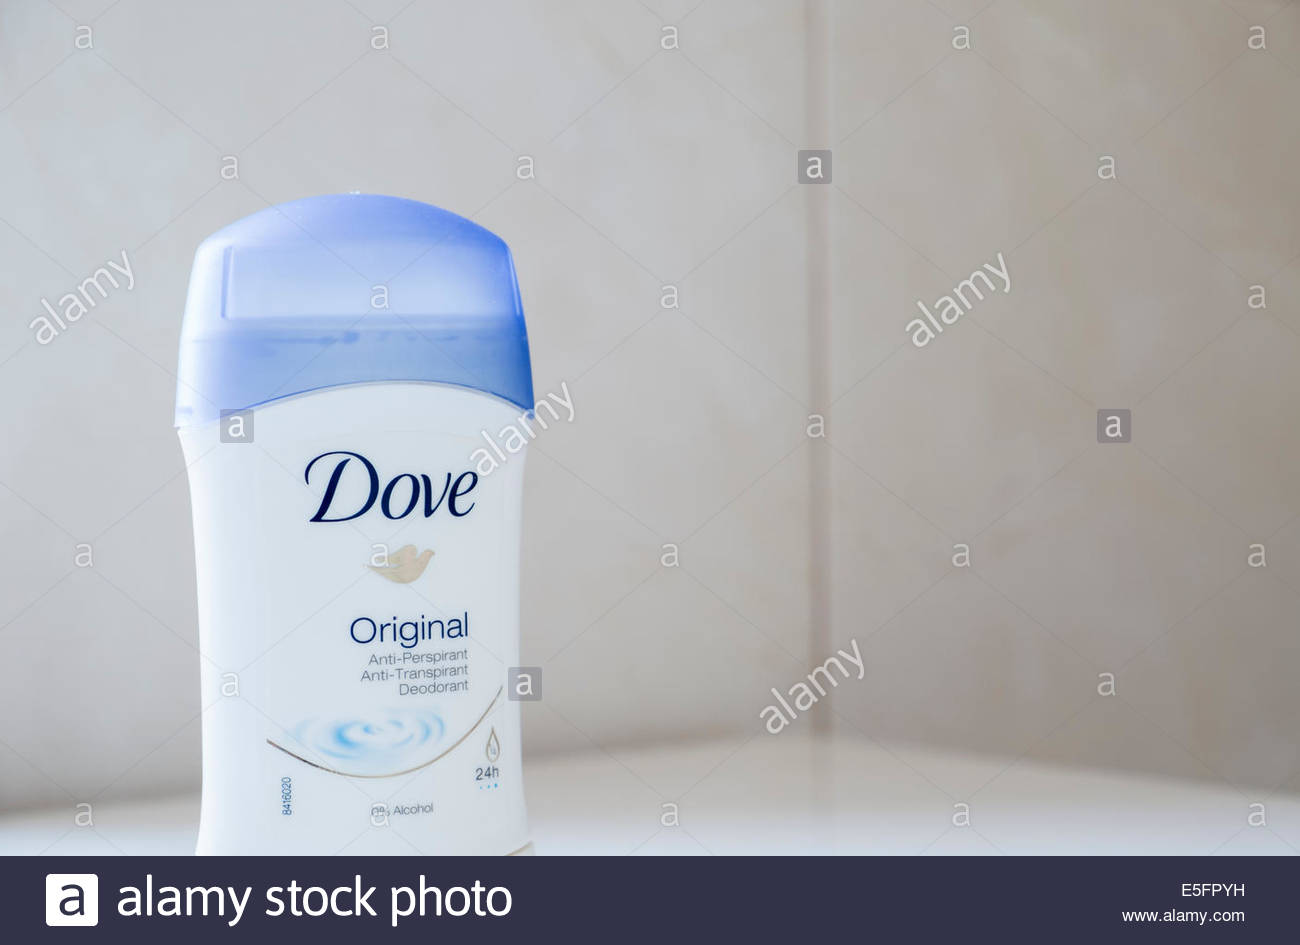 Dove original stick deodorant - Stock Image